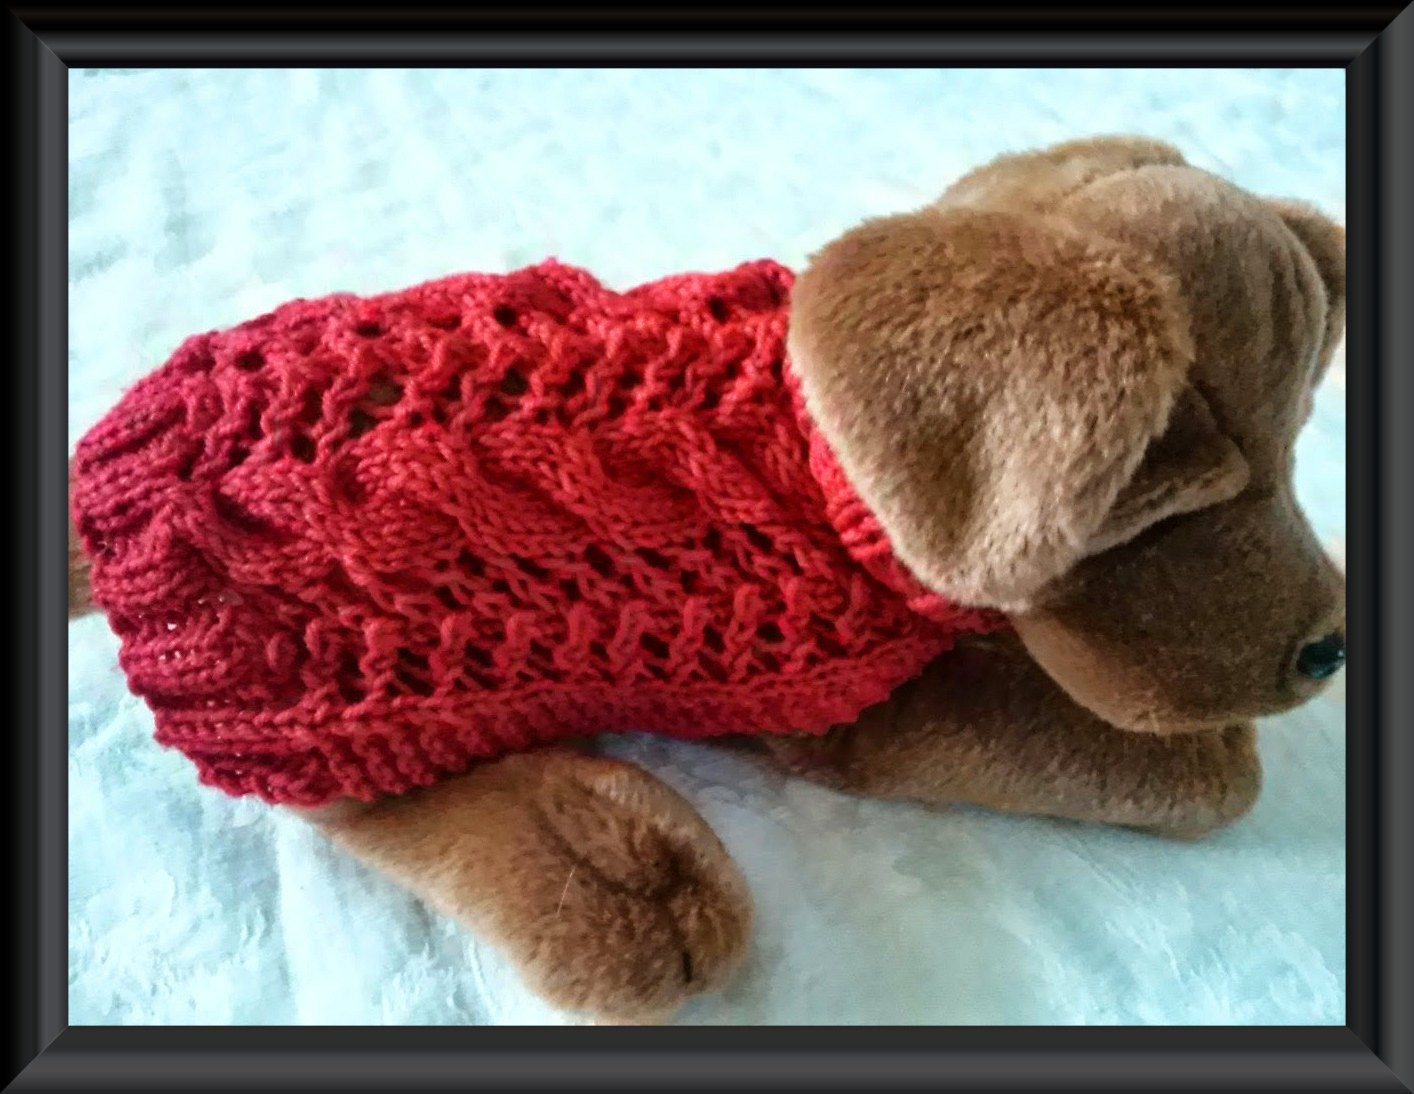 Awesome Dog Sweater Knitting Pattern Aran Twists Called Cables and Easy Knit Dog Sweater Of Charming 49 Ideas Easy Knit Dog Sweater